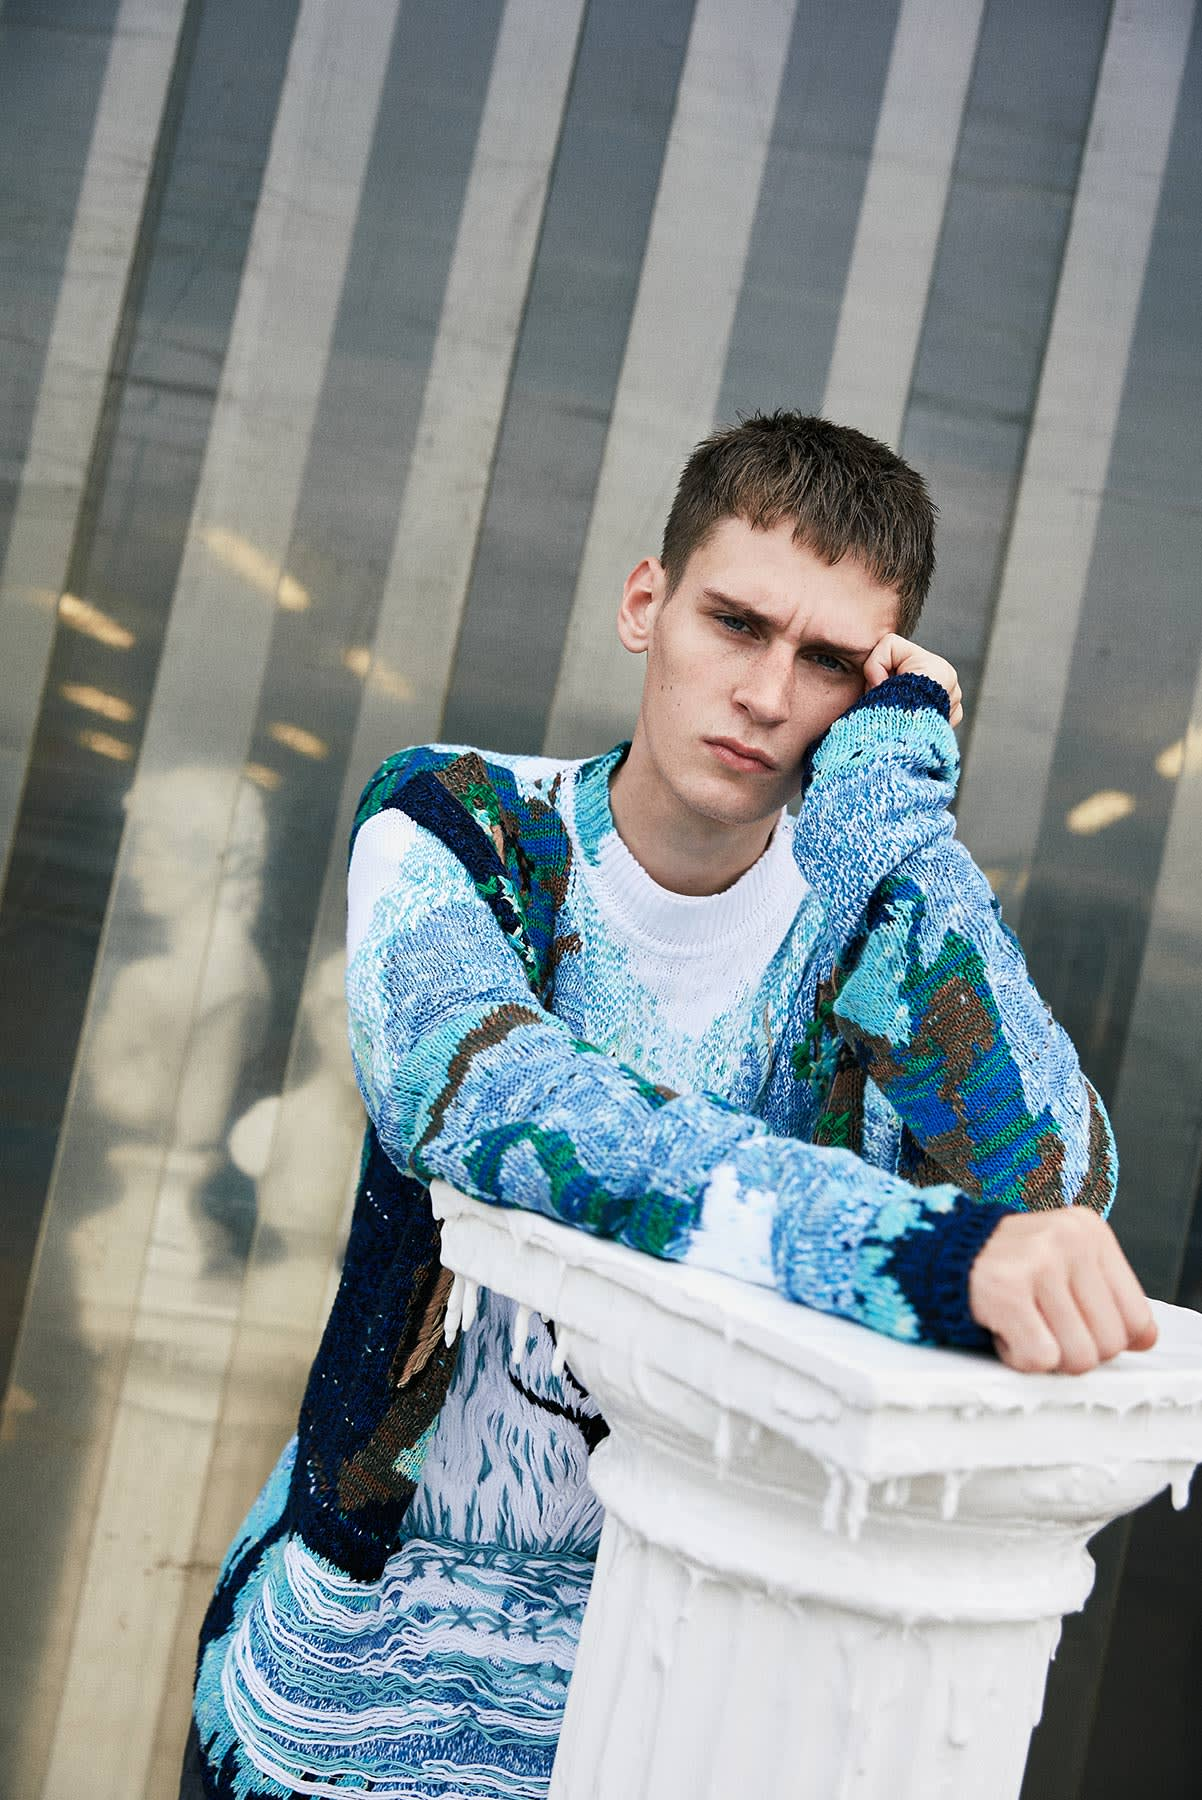 New Milan 2.0 END. AW19 Editorial .01 - Model wears Off-White